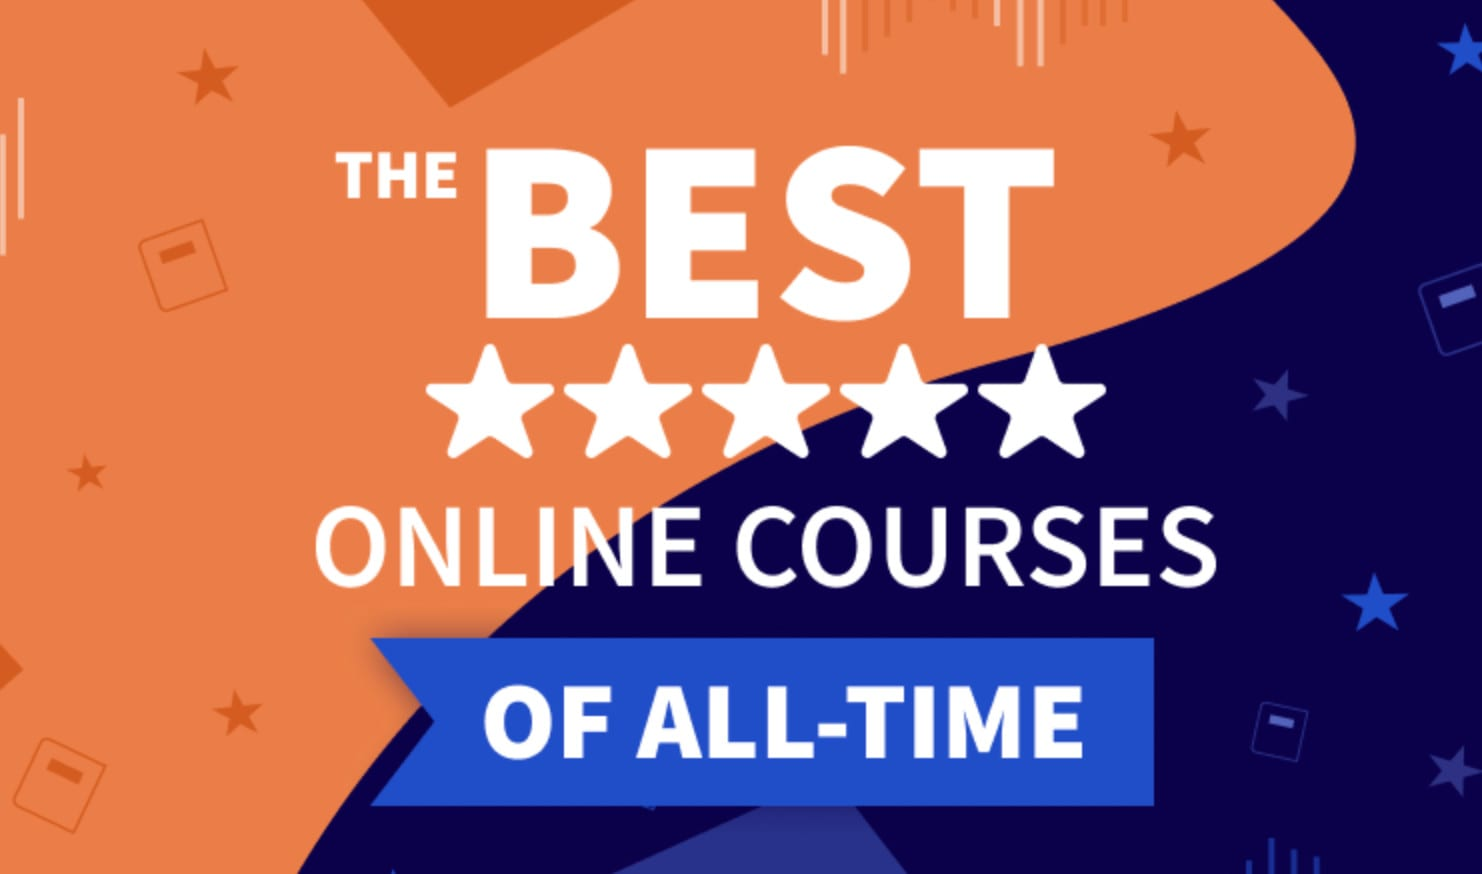 I will find a course online for you in 12 hours